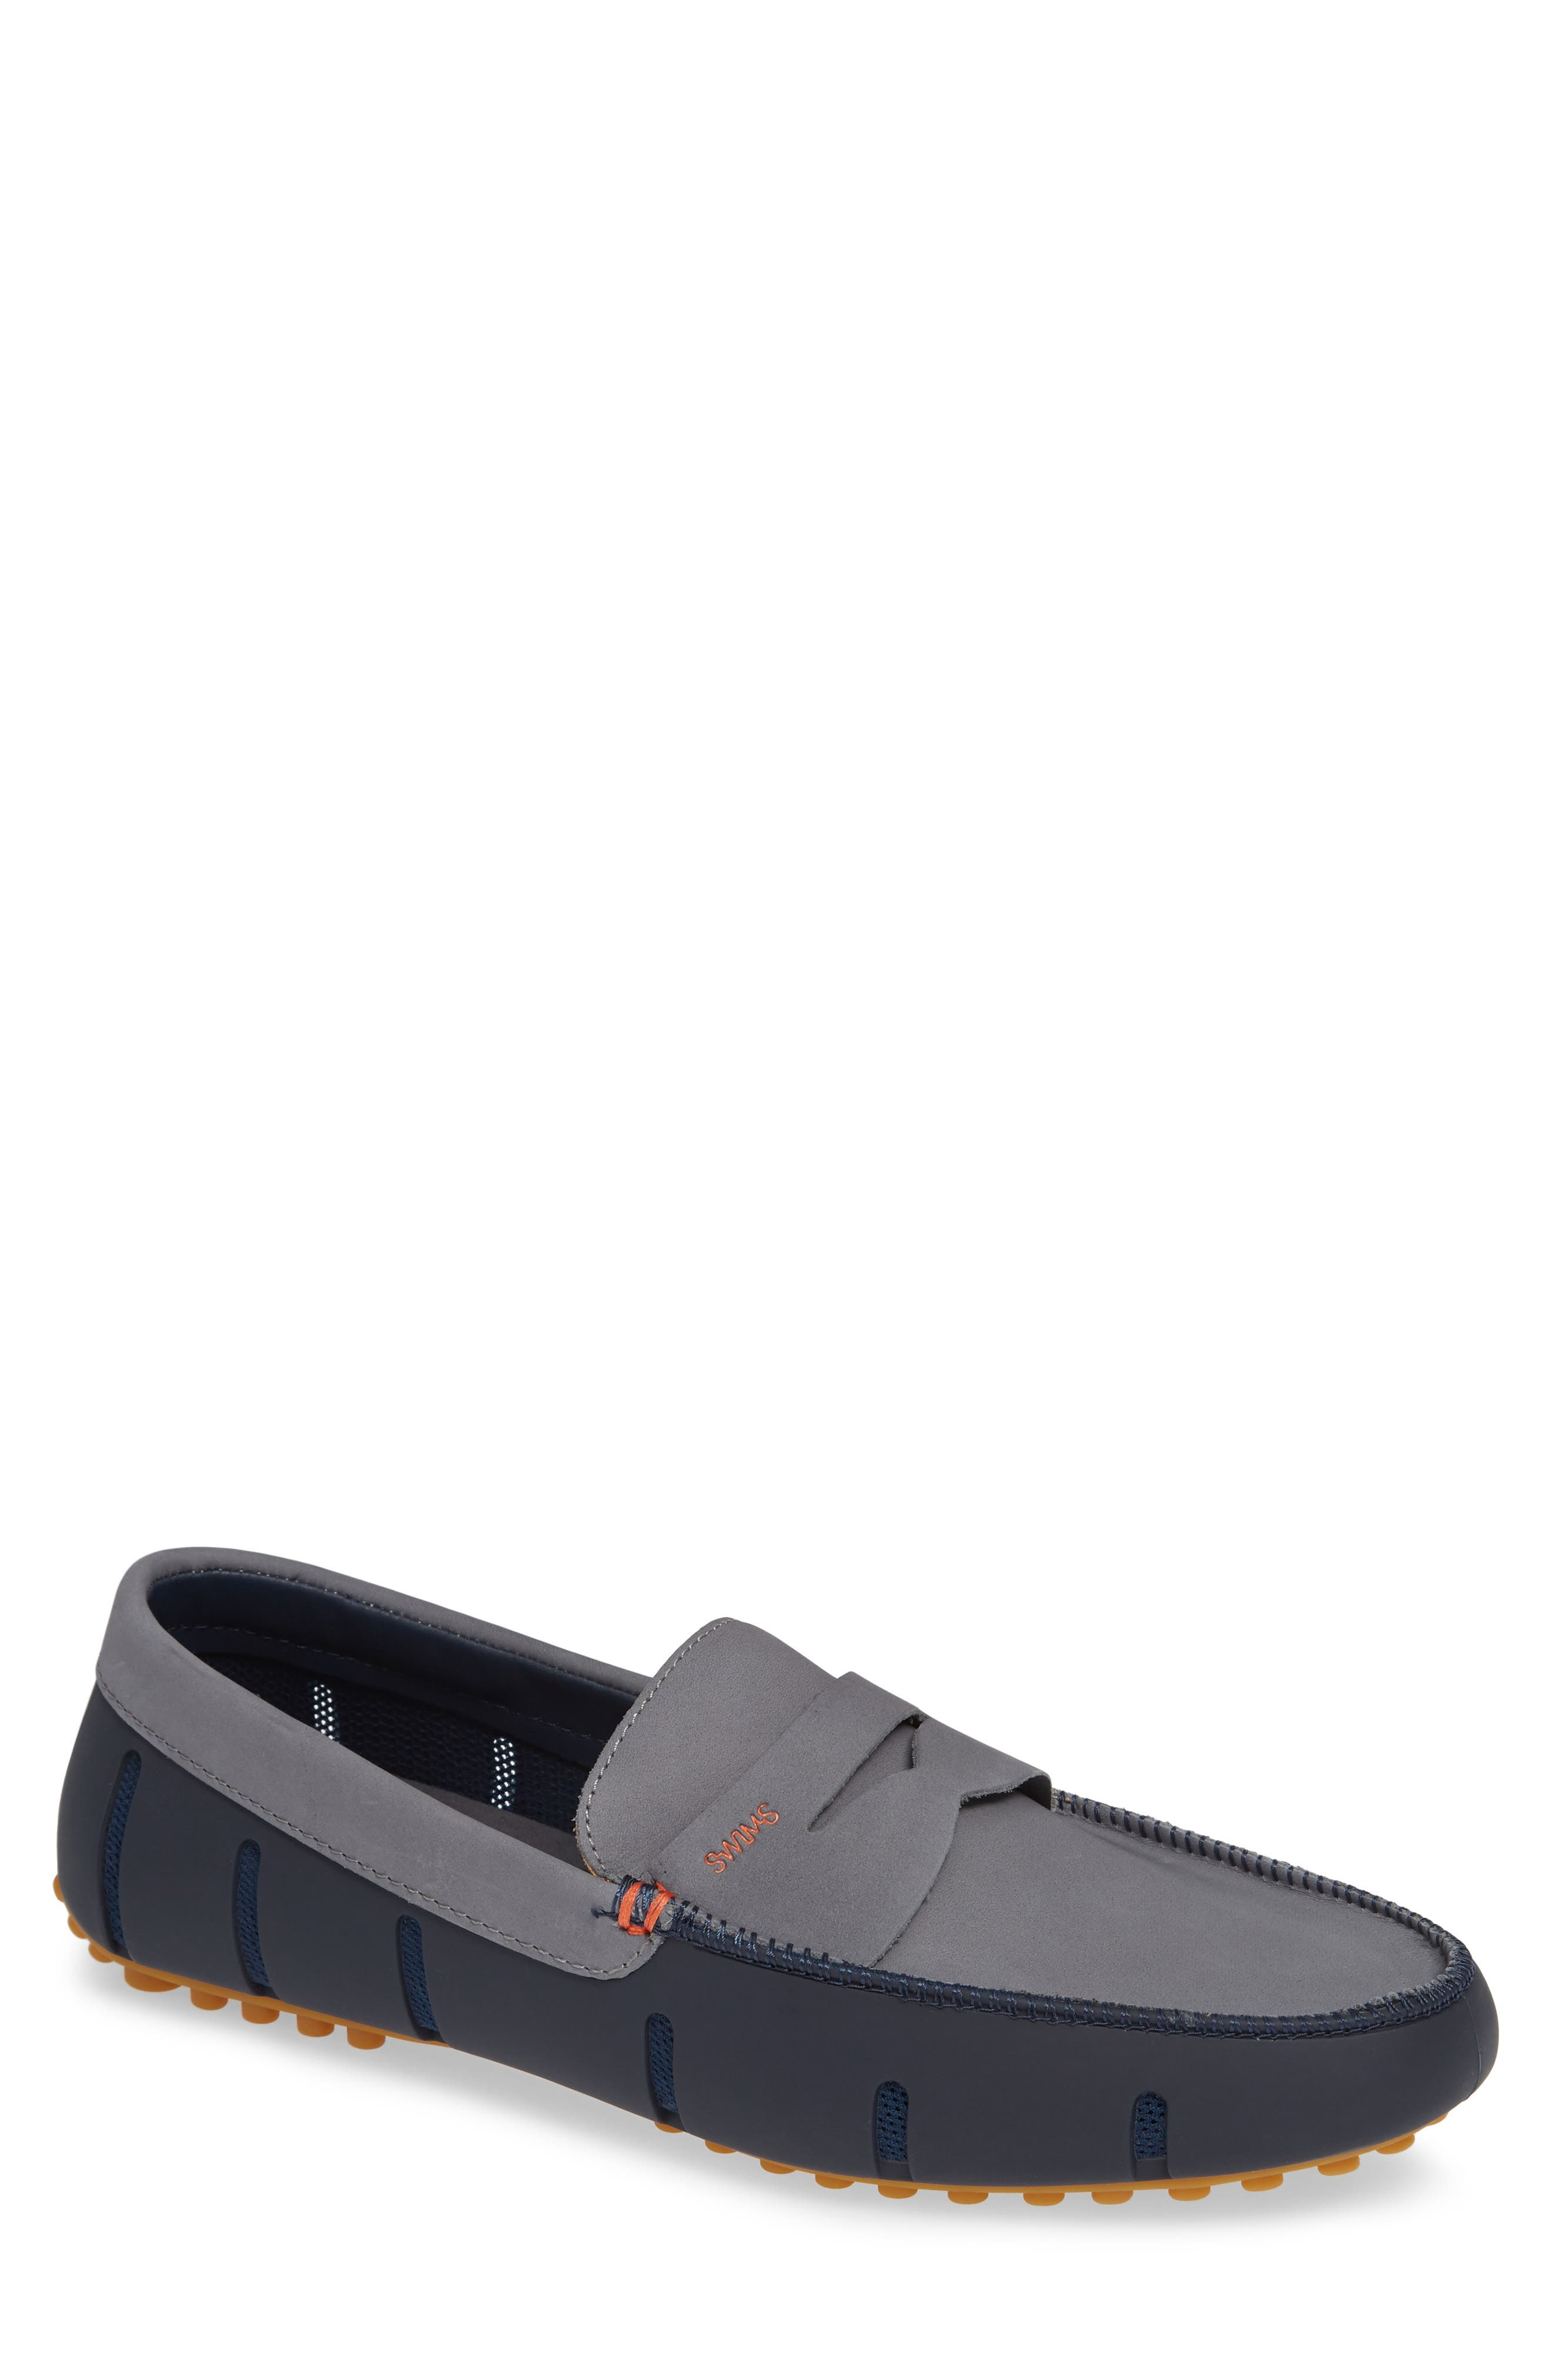 SWIMS Men'S Lux Nubuck Leather & Rubber Penny Loafer Drivers in Navy/Grey/Gum